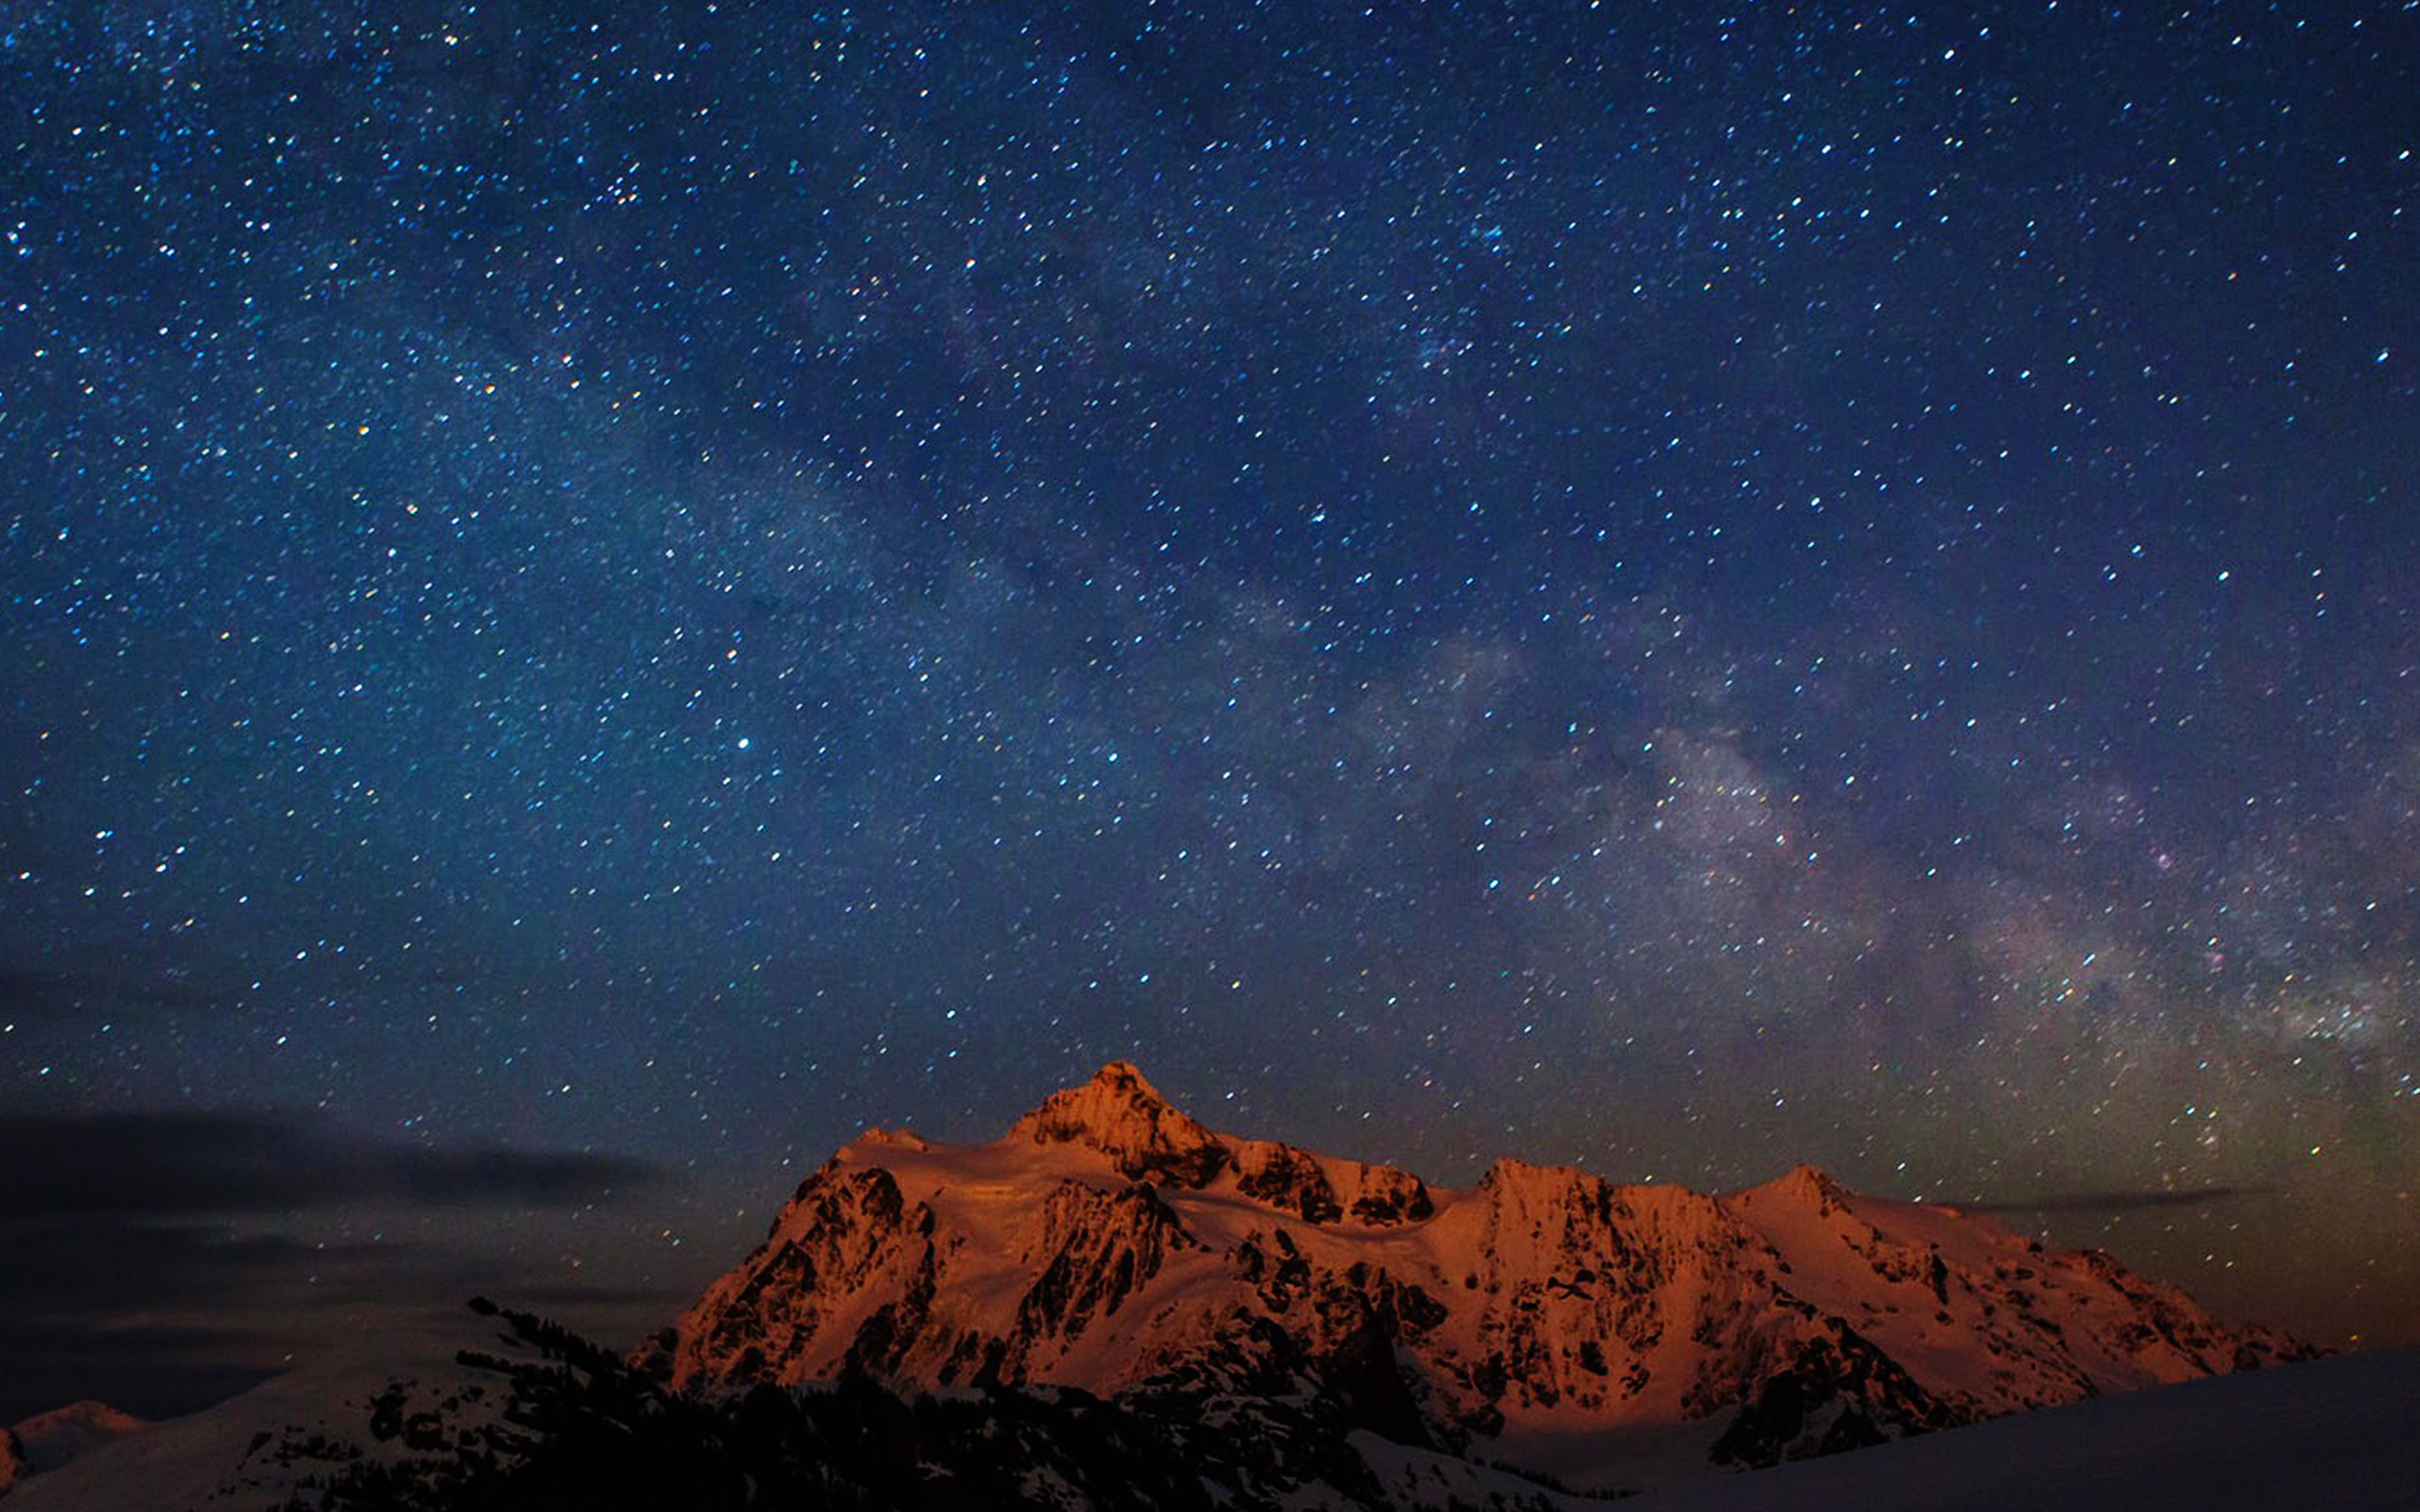 Iphone Android Desktop Backgrounds: Nf70-starry-night-sky-mountain-nature-wallpaper